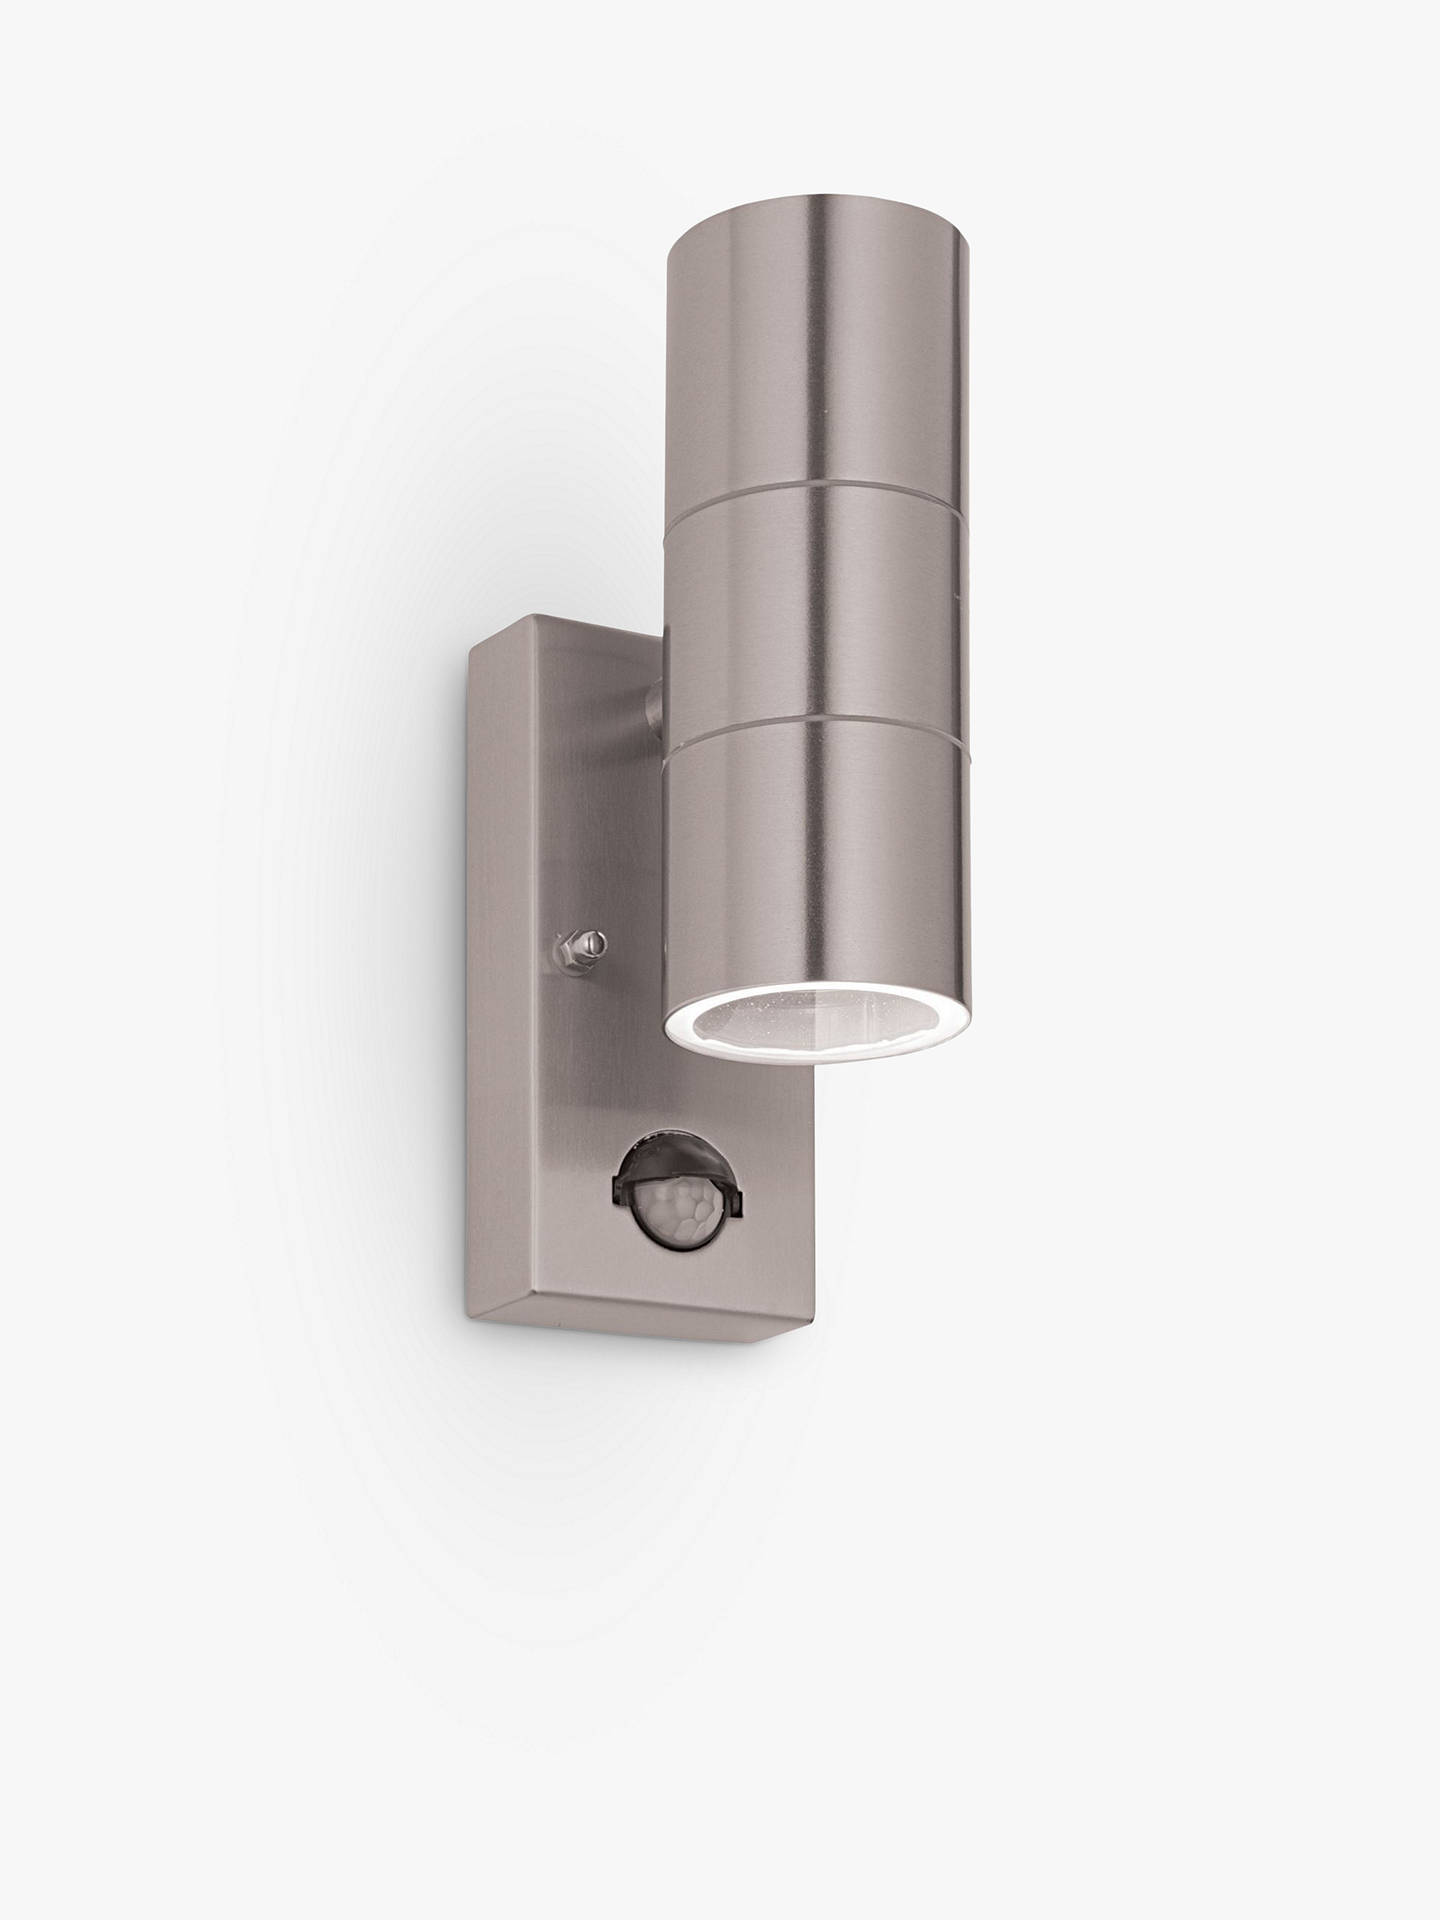 Pir Outdoor Light Instructions Lighting Wickes Wiring John Lewis Partners Strom Led Wall Steel At